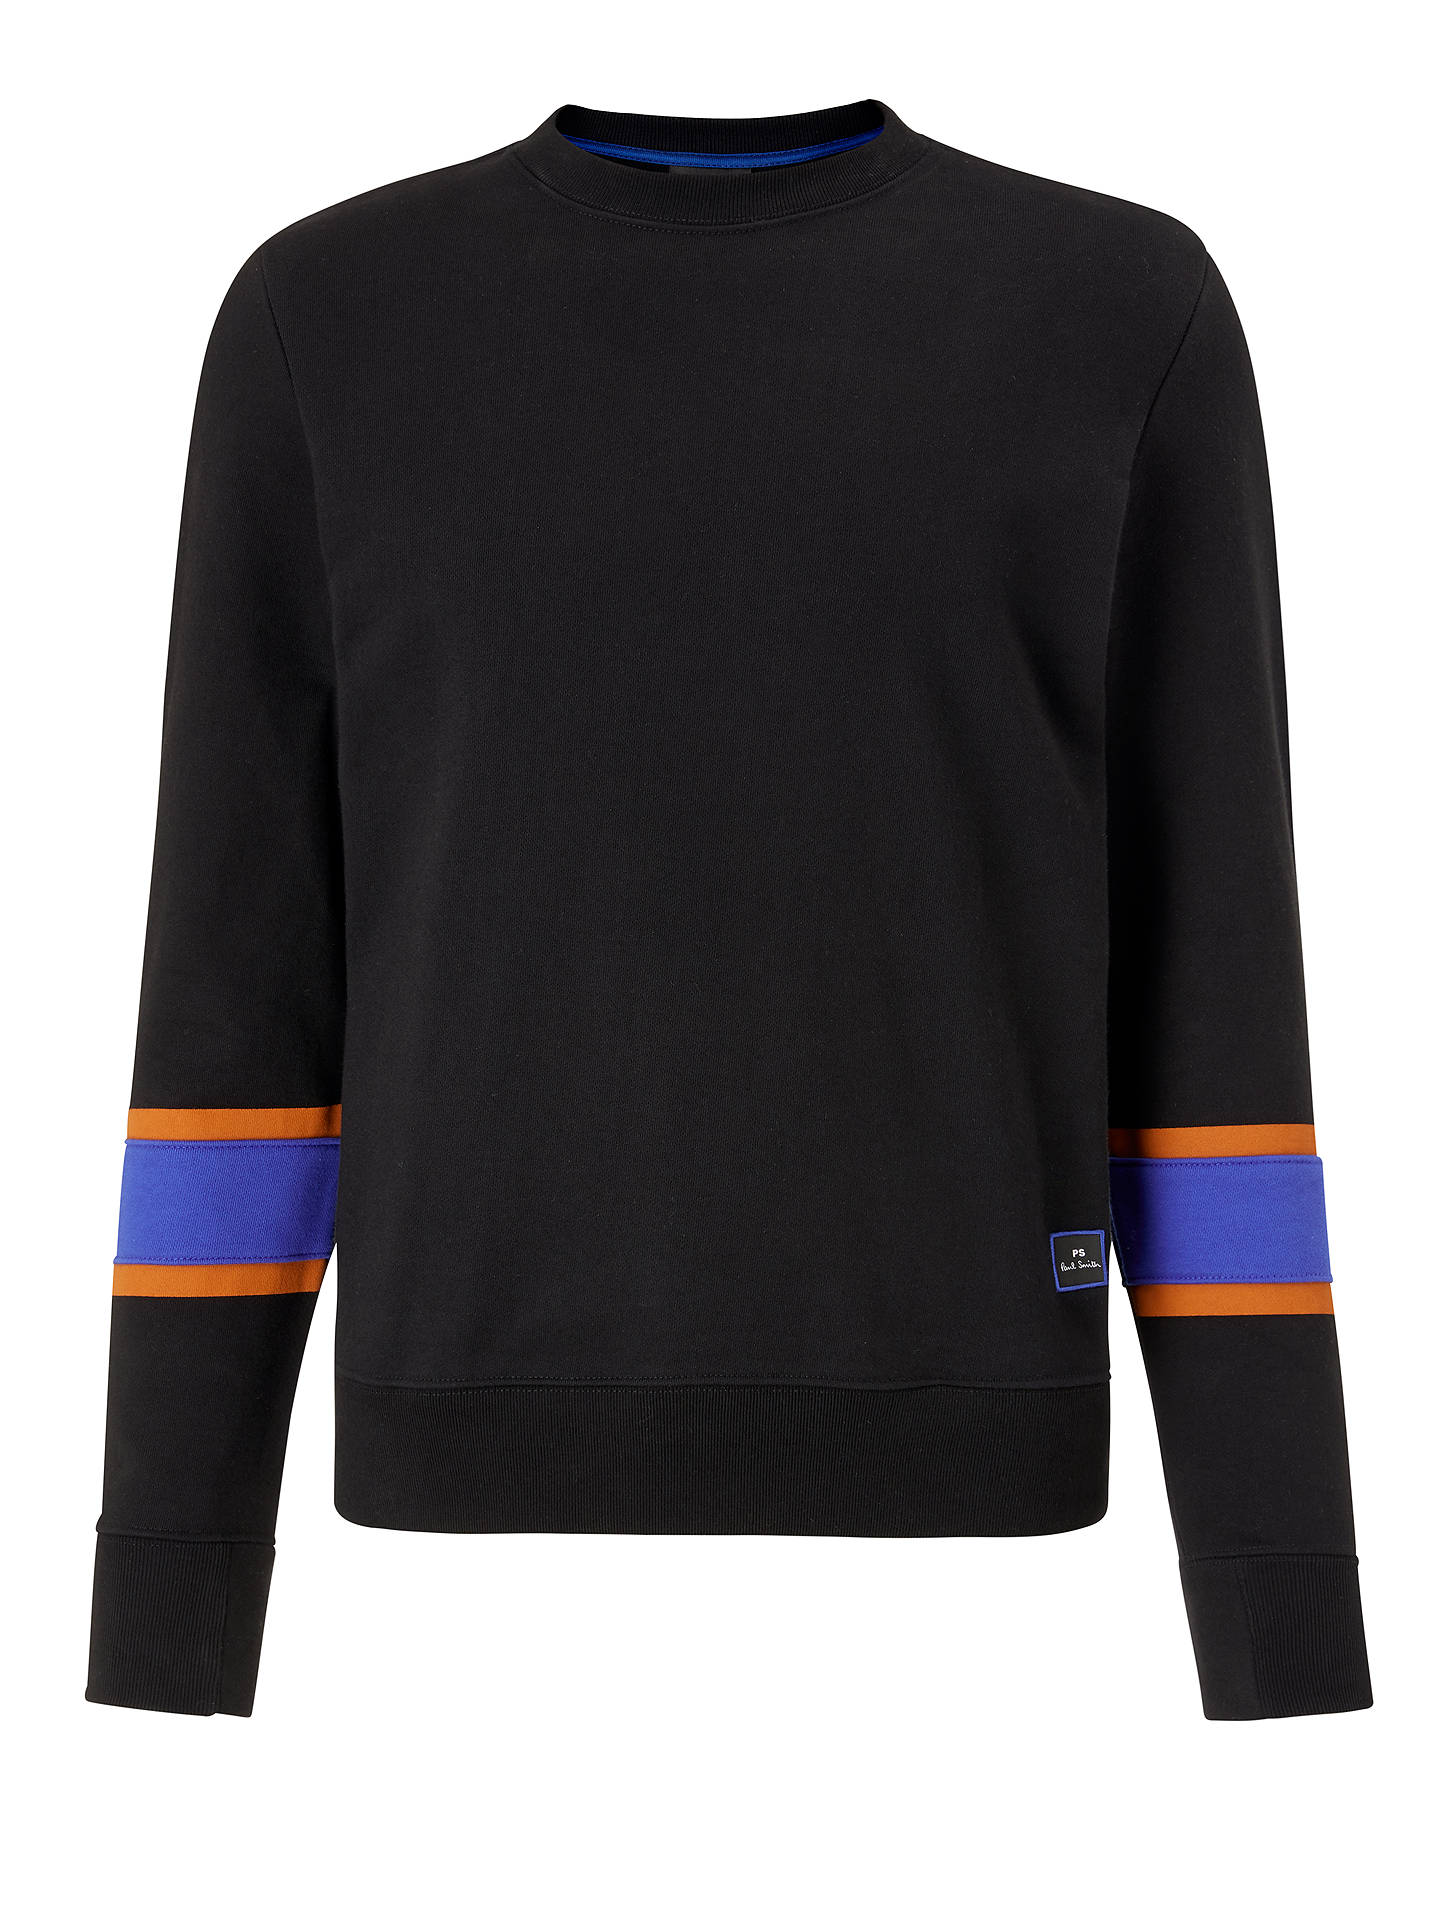 Buy PS Paul Smith Stripe Sweatshirt, Black, XL Online at johnlewis.com